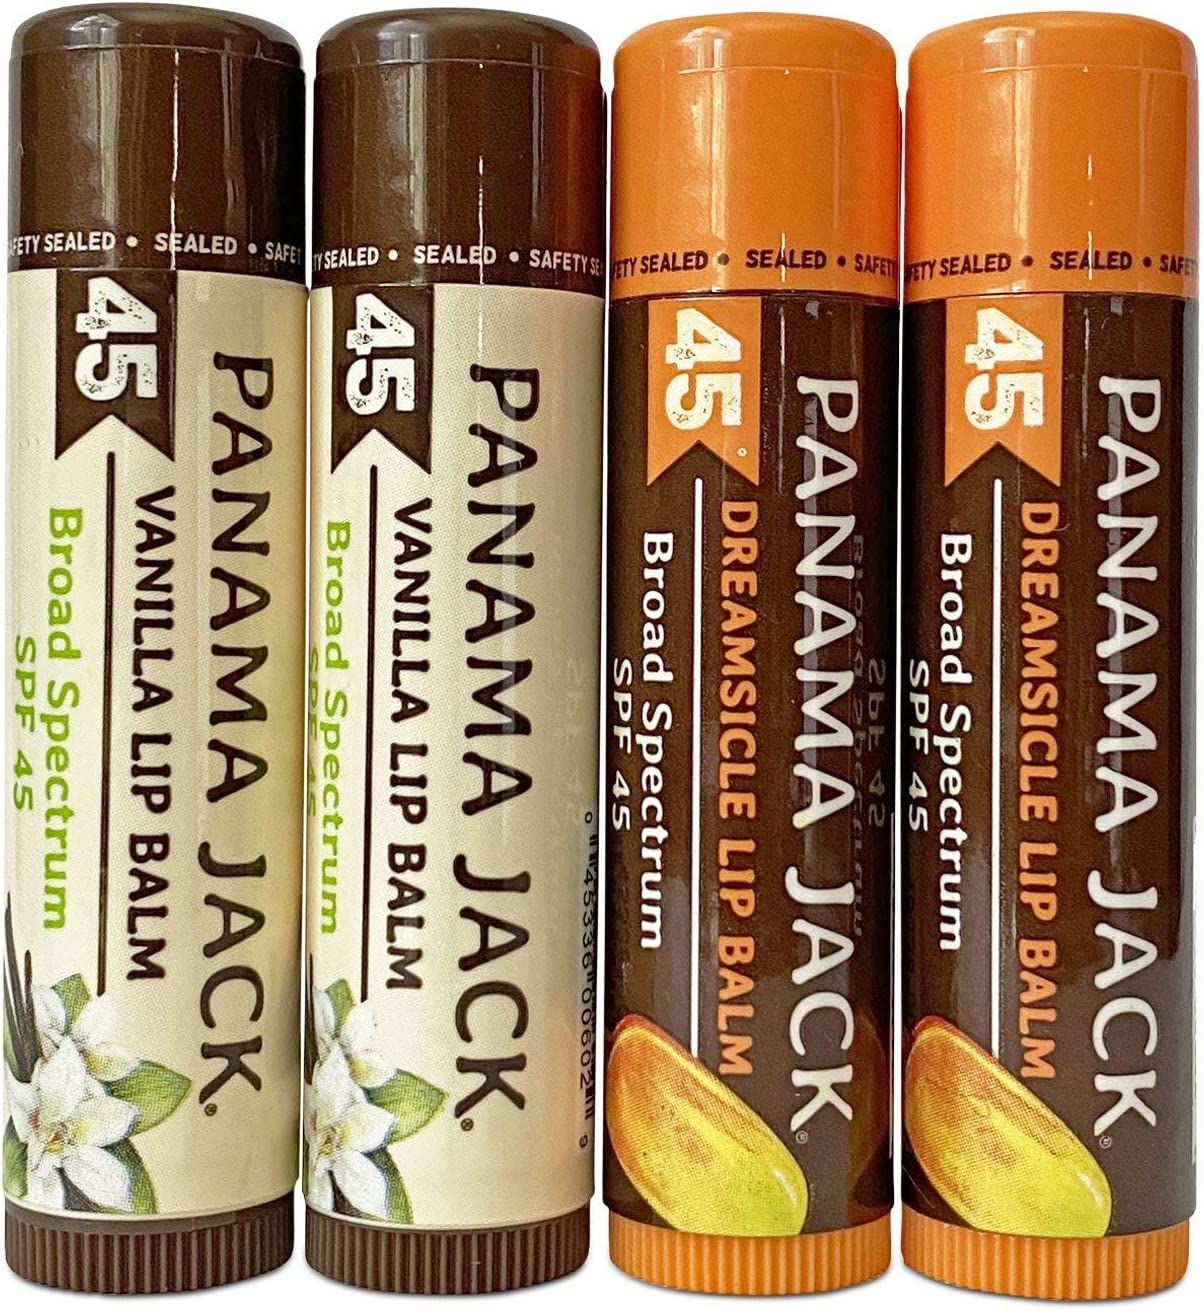 Panama Jack Sunscreen Lip Balm - SPF 45, Dual Pack Dreamsicle & Vanilla, Broad Spectrum UVA-UVB Sunscreen Protection, Prevents & Soothes Dry, Chapped Lips